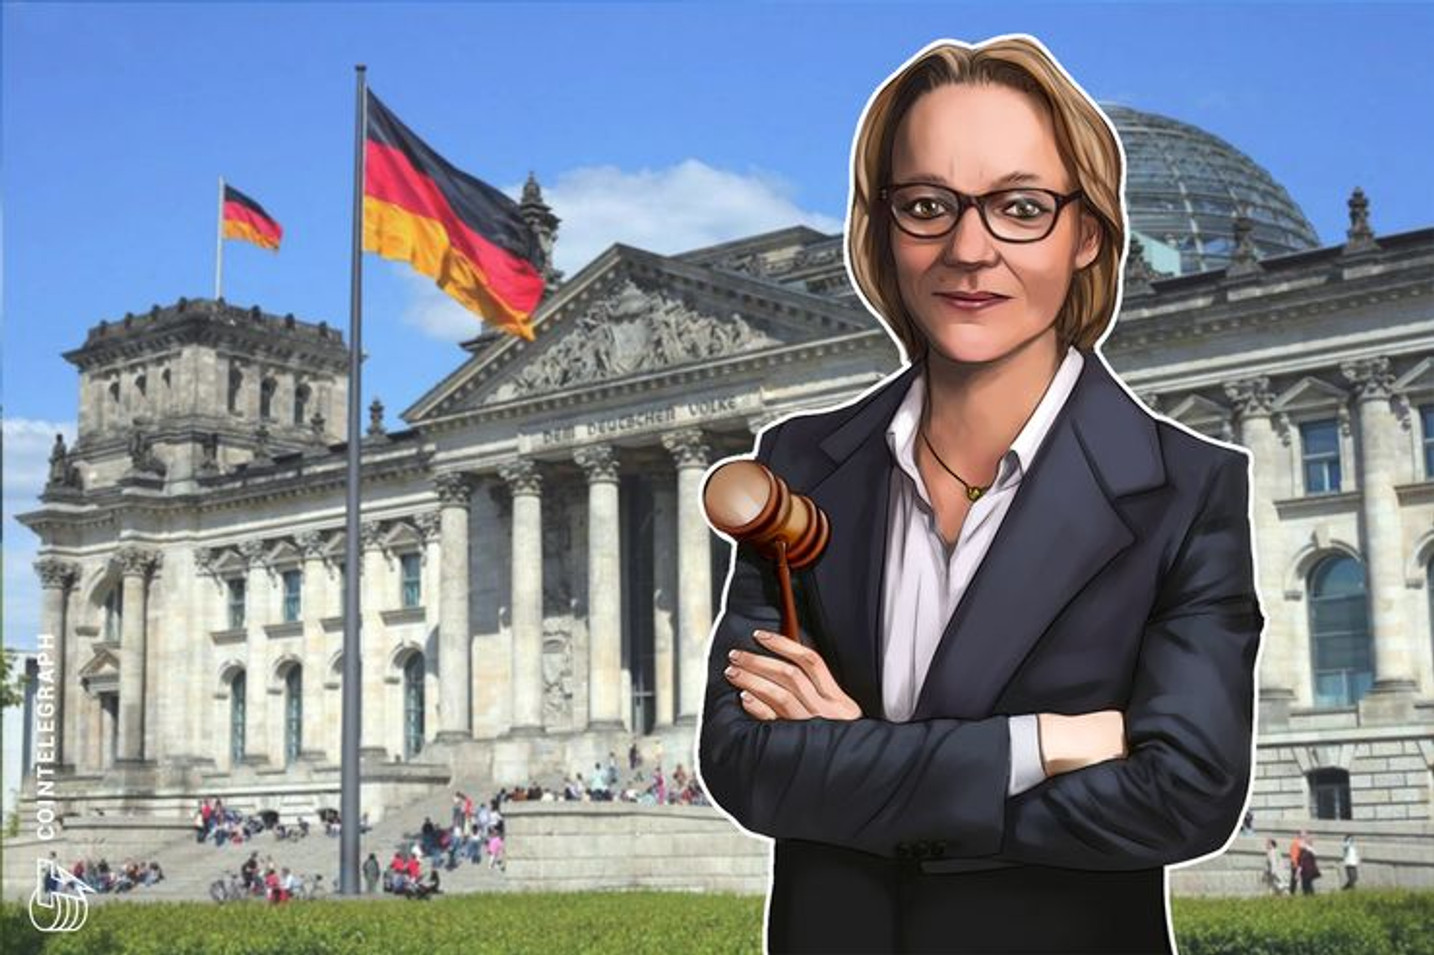 Dr. Nina-Luisa Siedler ist neue Direktorin der International Association for Trusted Blockchain Applications